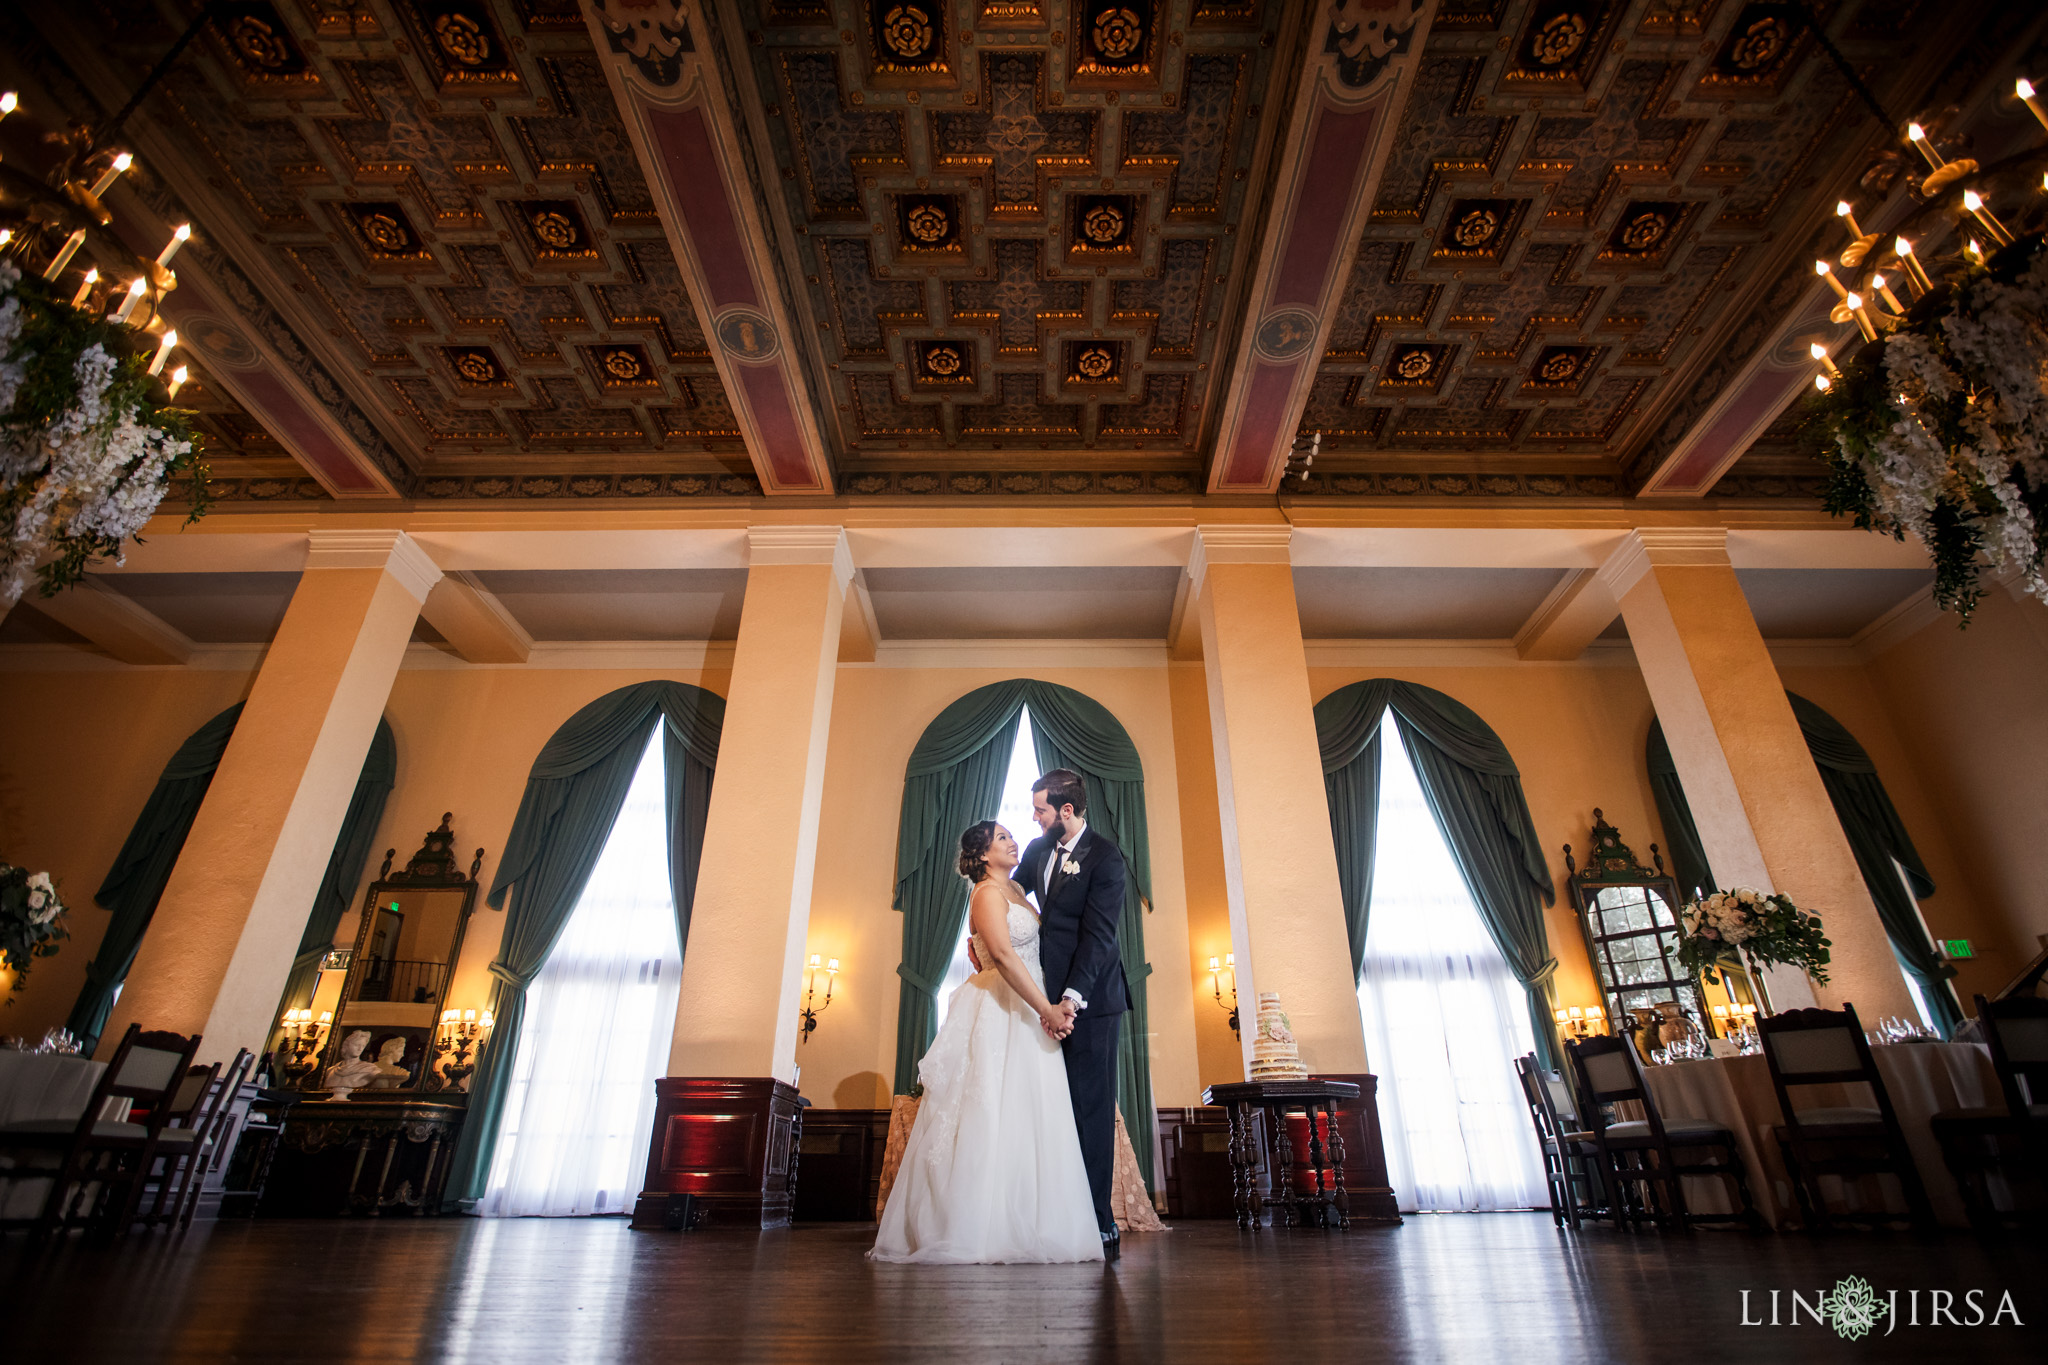 87 The Ebell Los Angeles Wedding Photography